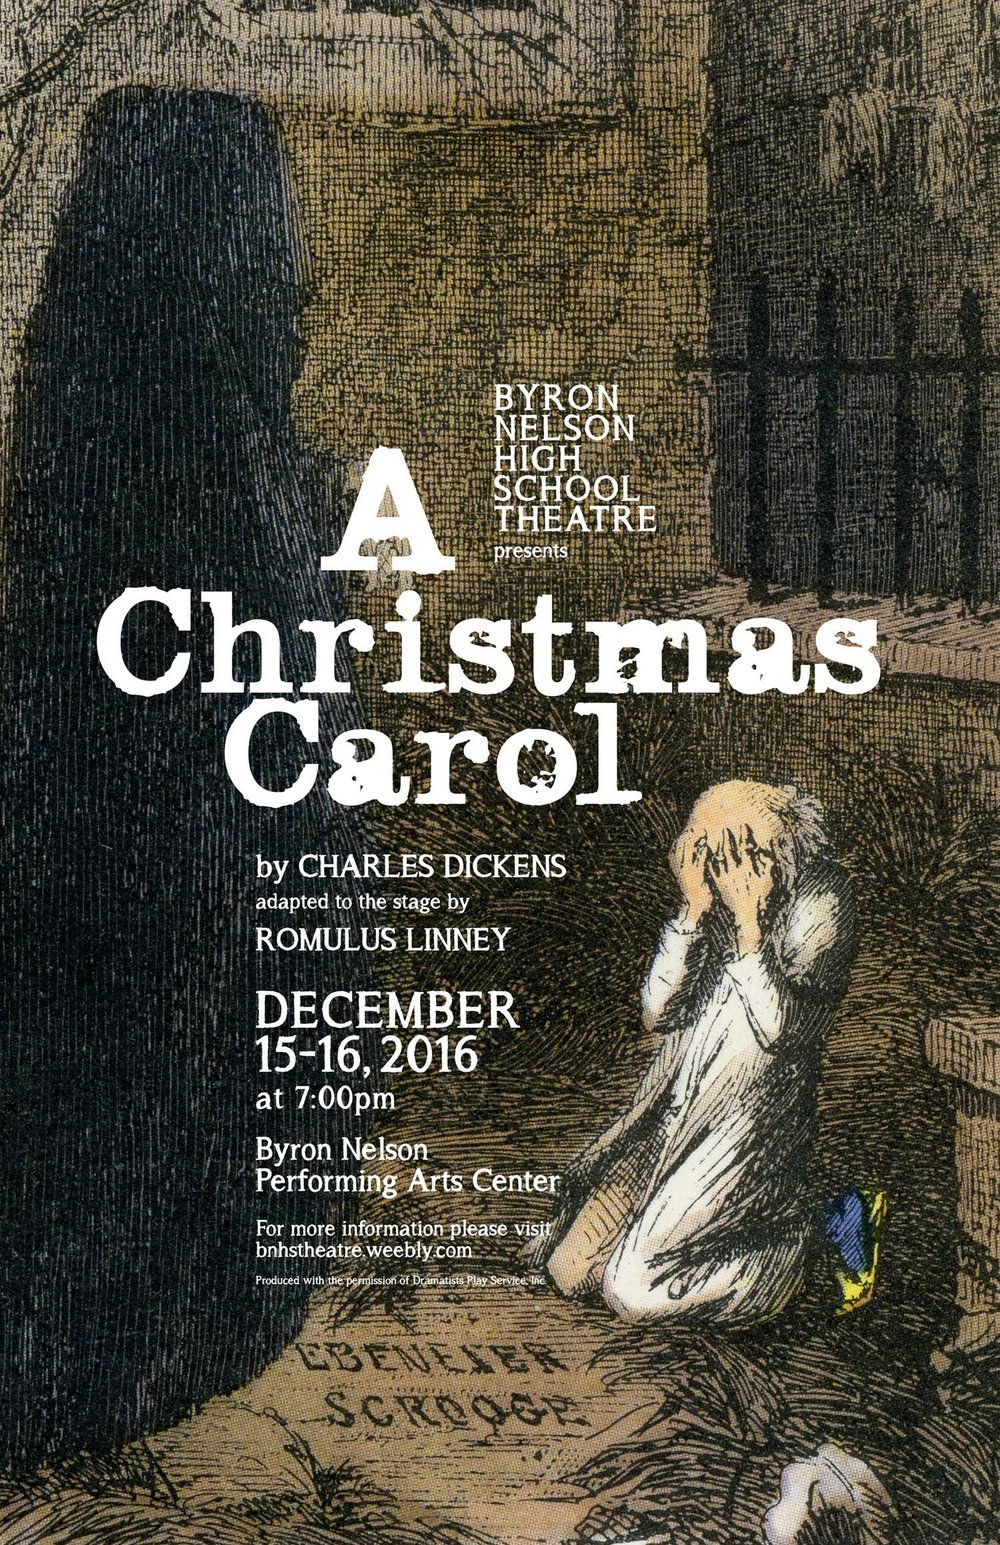 Christmas-Carol-Drama-Queen-Graphics-Illustration_ss.jpg